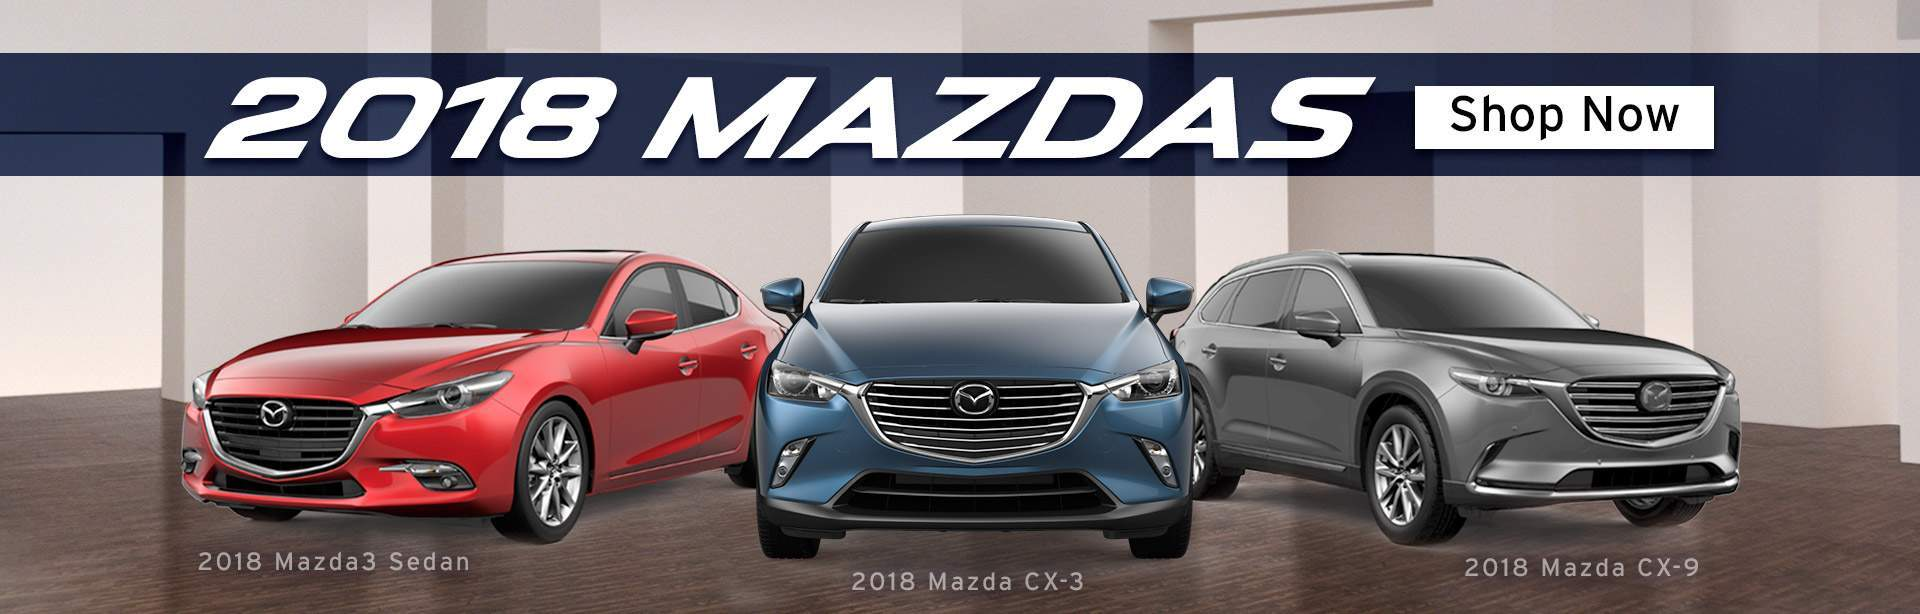 New & Used Mazda Dealer in Vermont near New Hampshire & New York